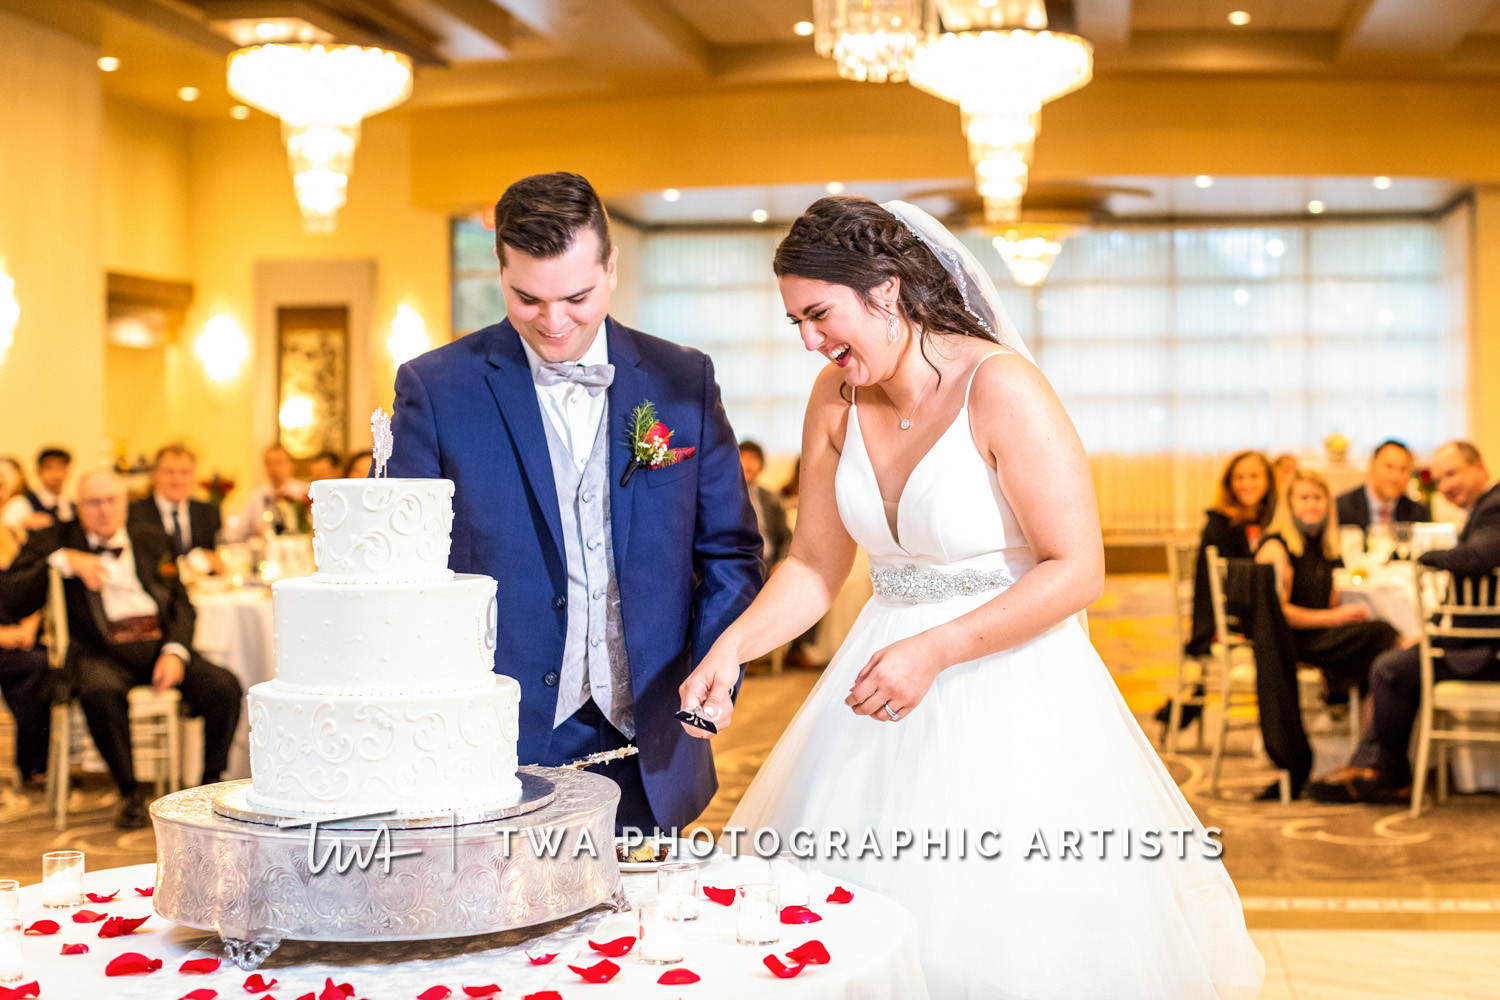 Chicago-Wedding-Photographer-TWA-Photographic-Artists-Avante-Banquets_Zickert_Quaas_MD_SG-0782